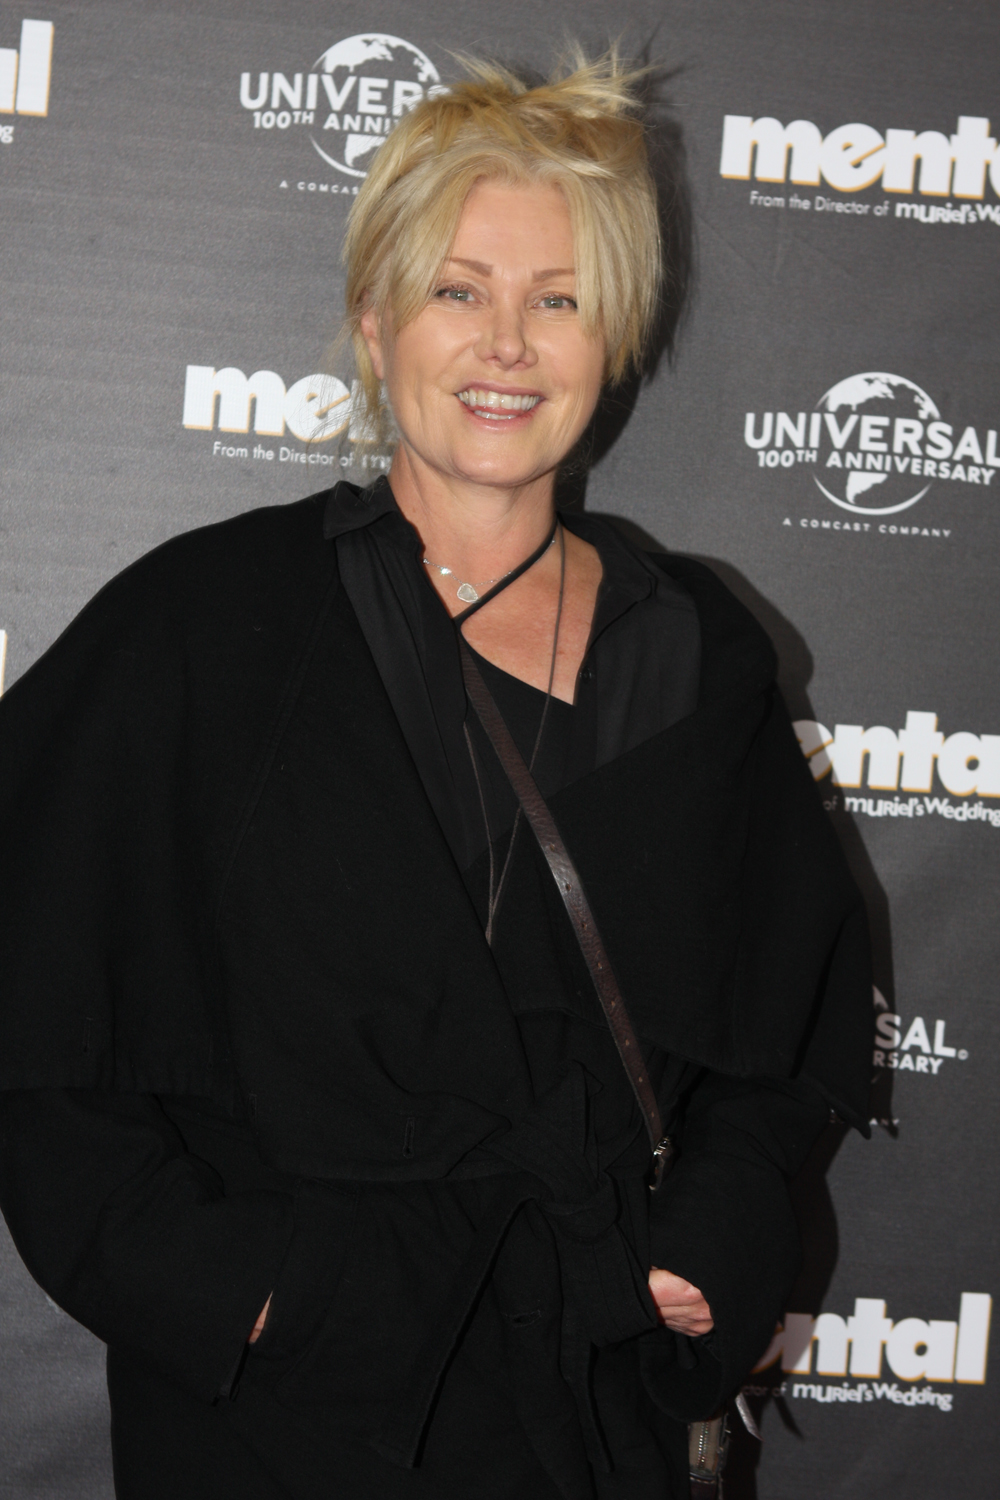 Deborra-Lee Furness - Wikipedia